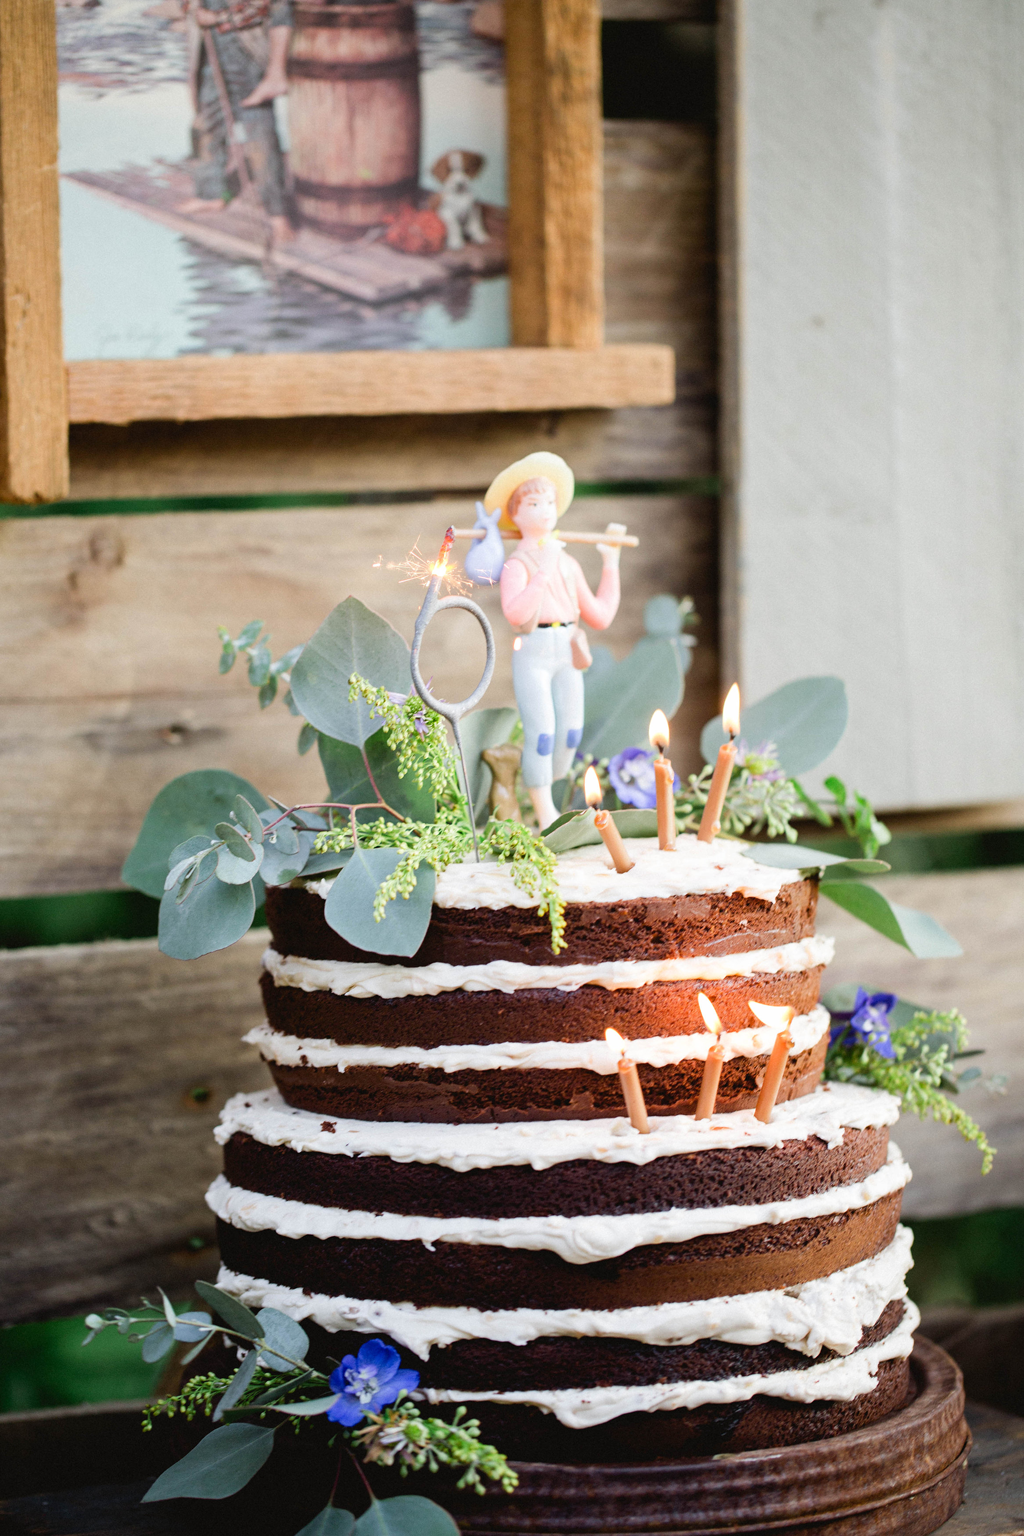 Naked Cake We Love This Idea For A Rustic Birthday Party